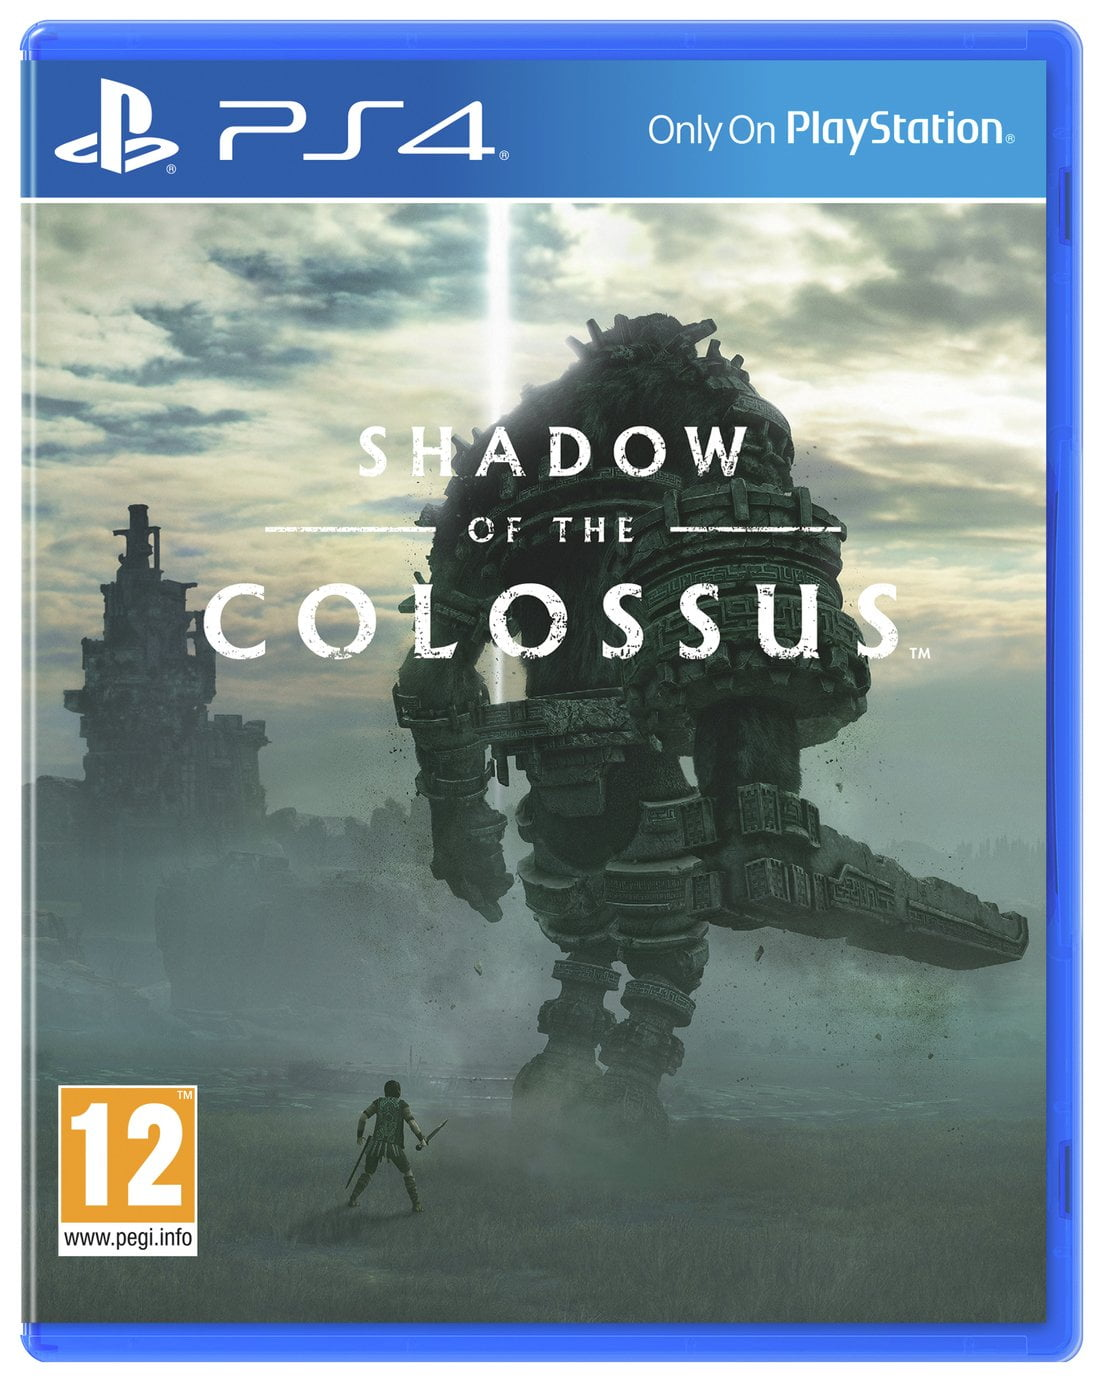 Shadow of the Colossus PS4 Game.